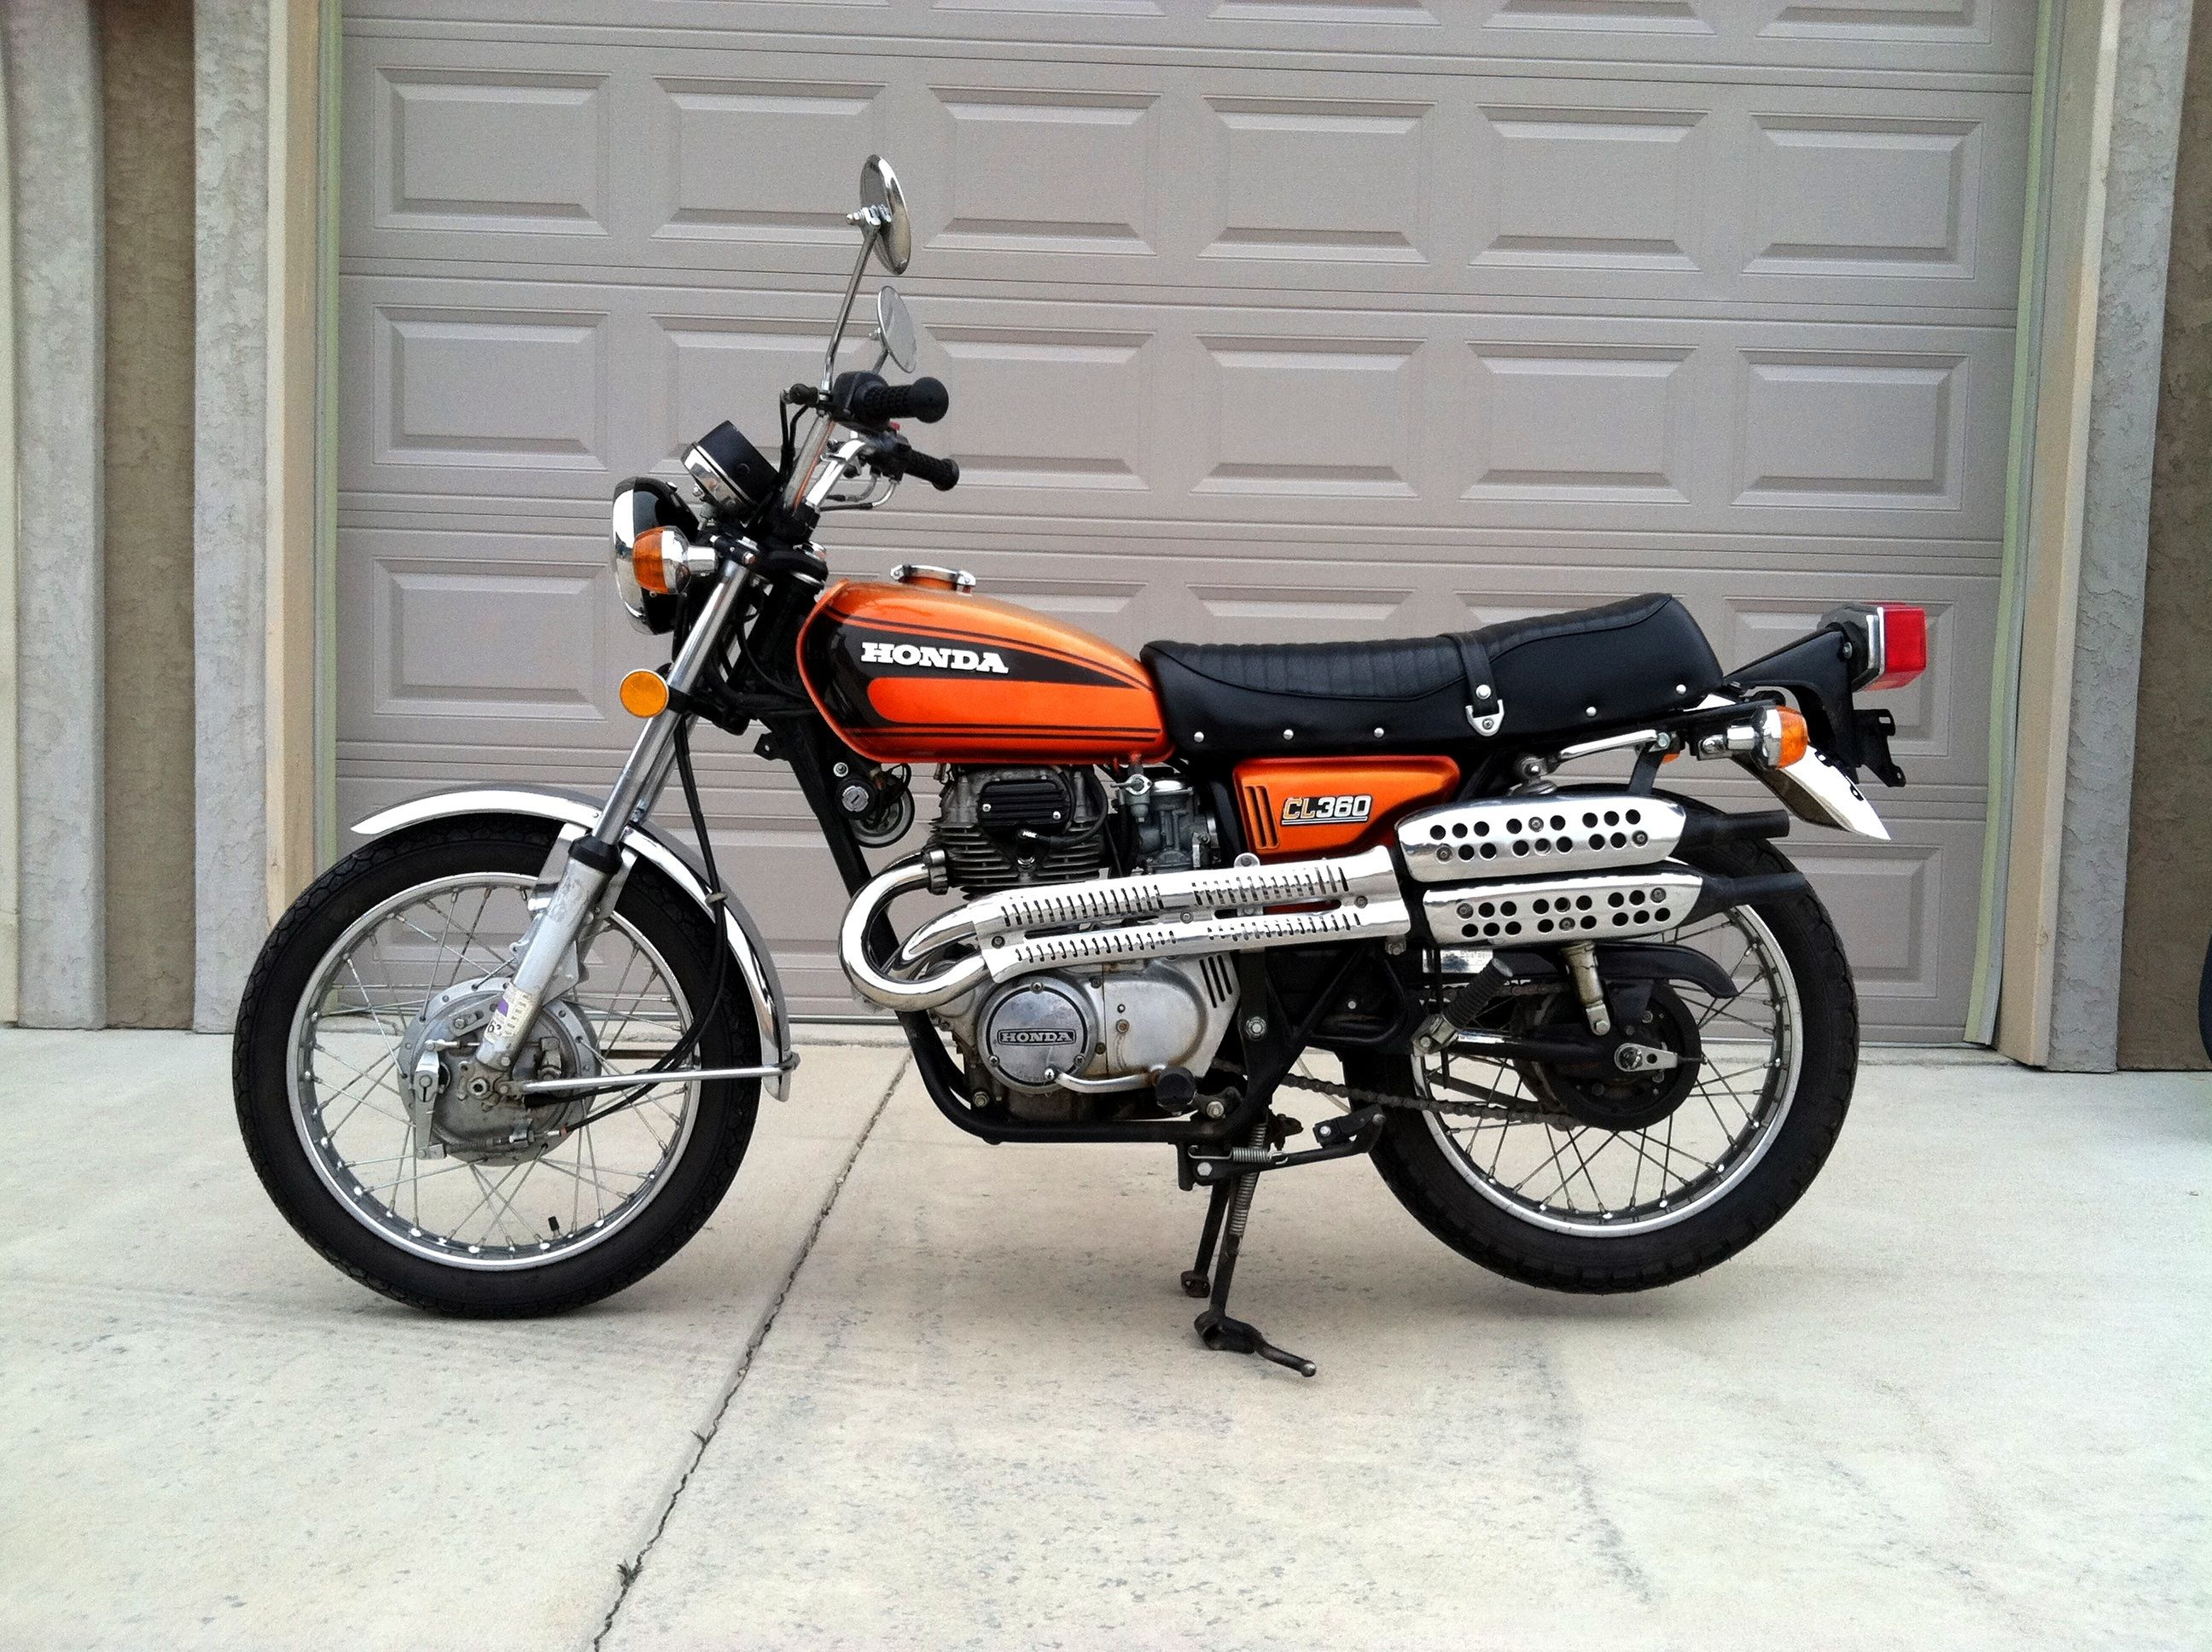 1975 Honda Cl360 K1 360cc With 6 Speed Transmission 81100 New Boy Ct 90 K 1 Wiring Diagram Did I Have Fun